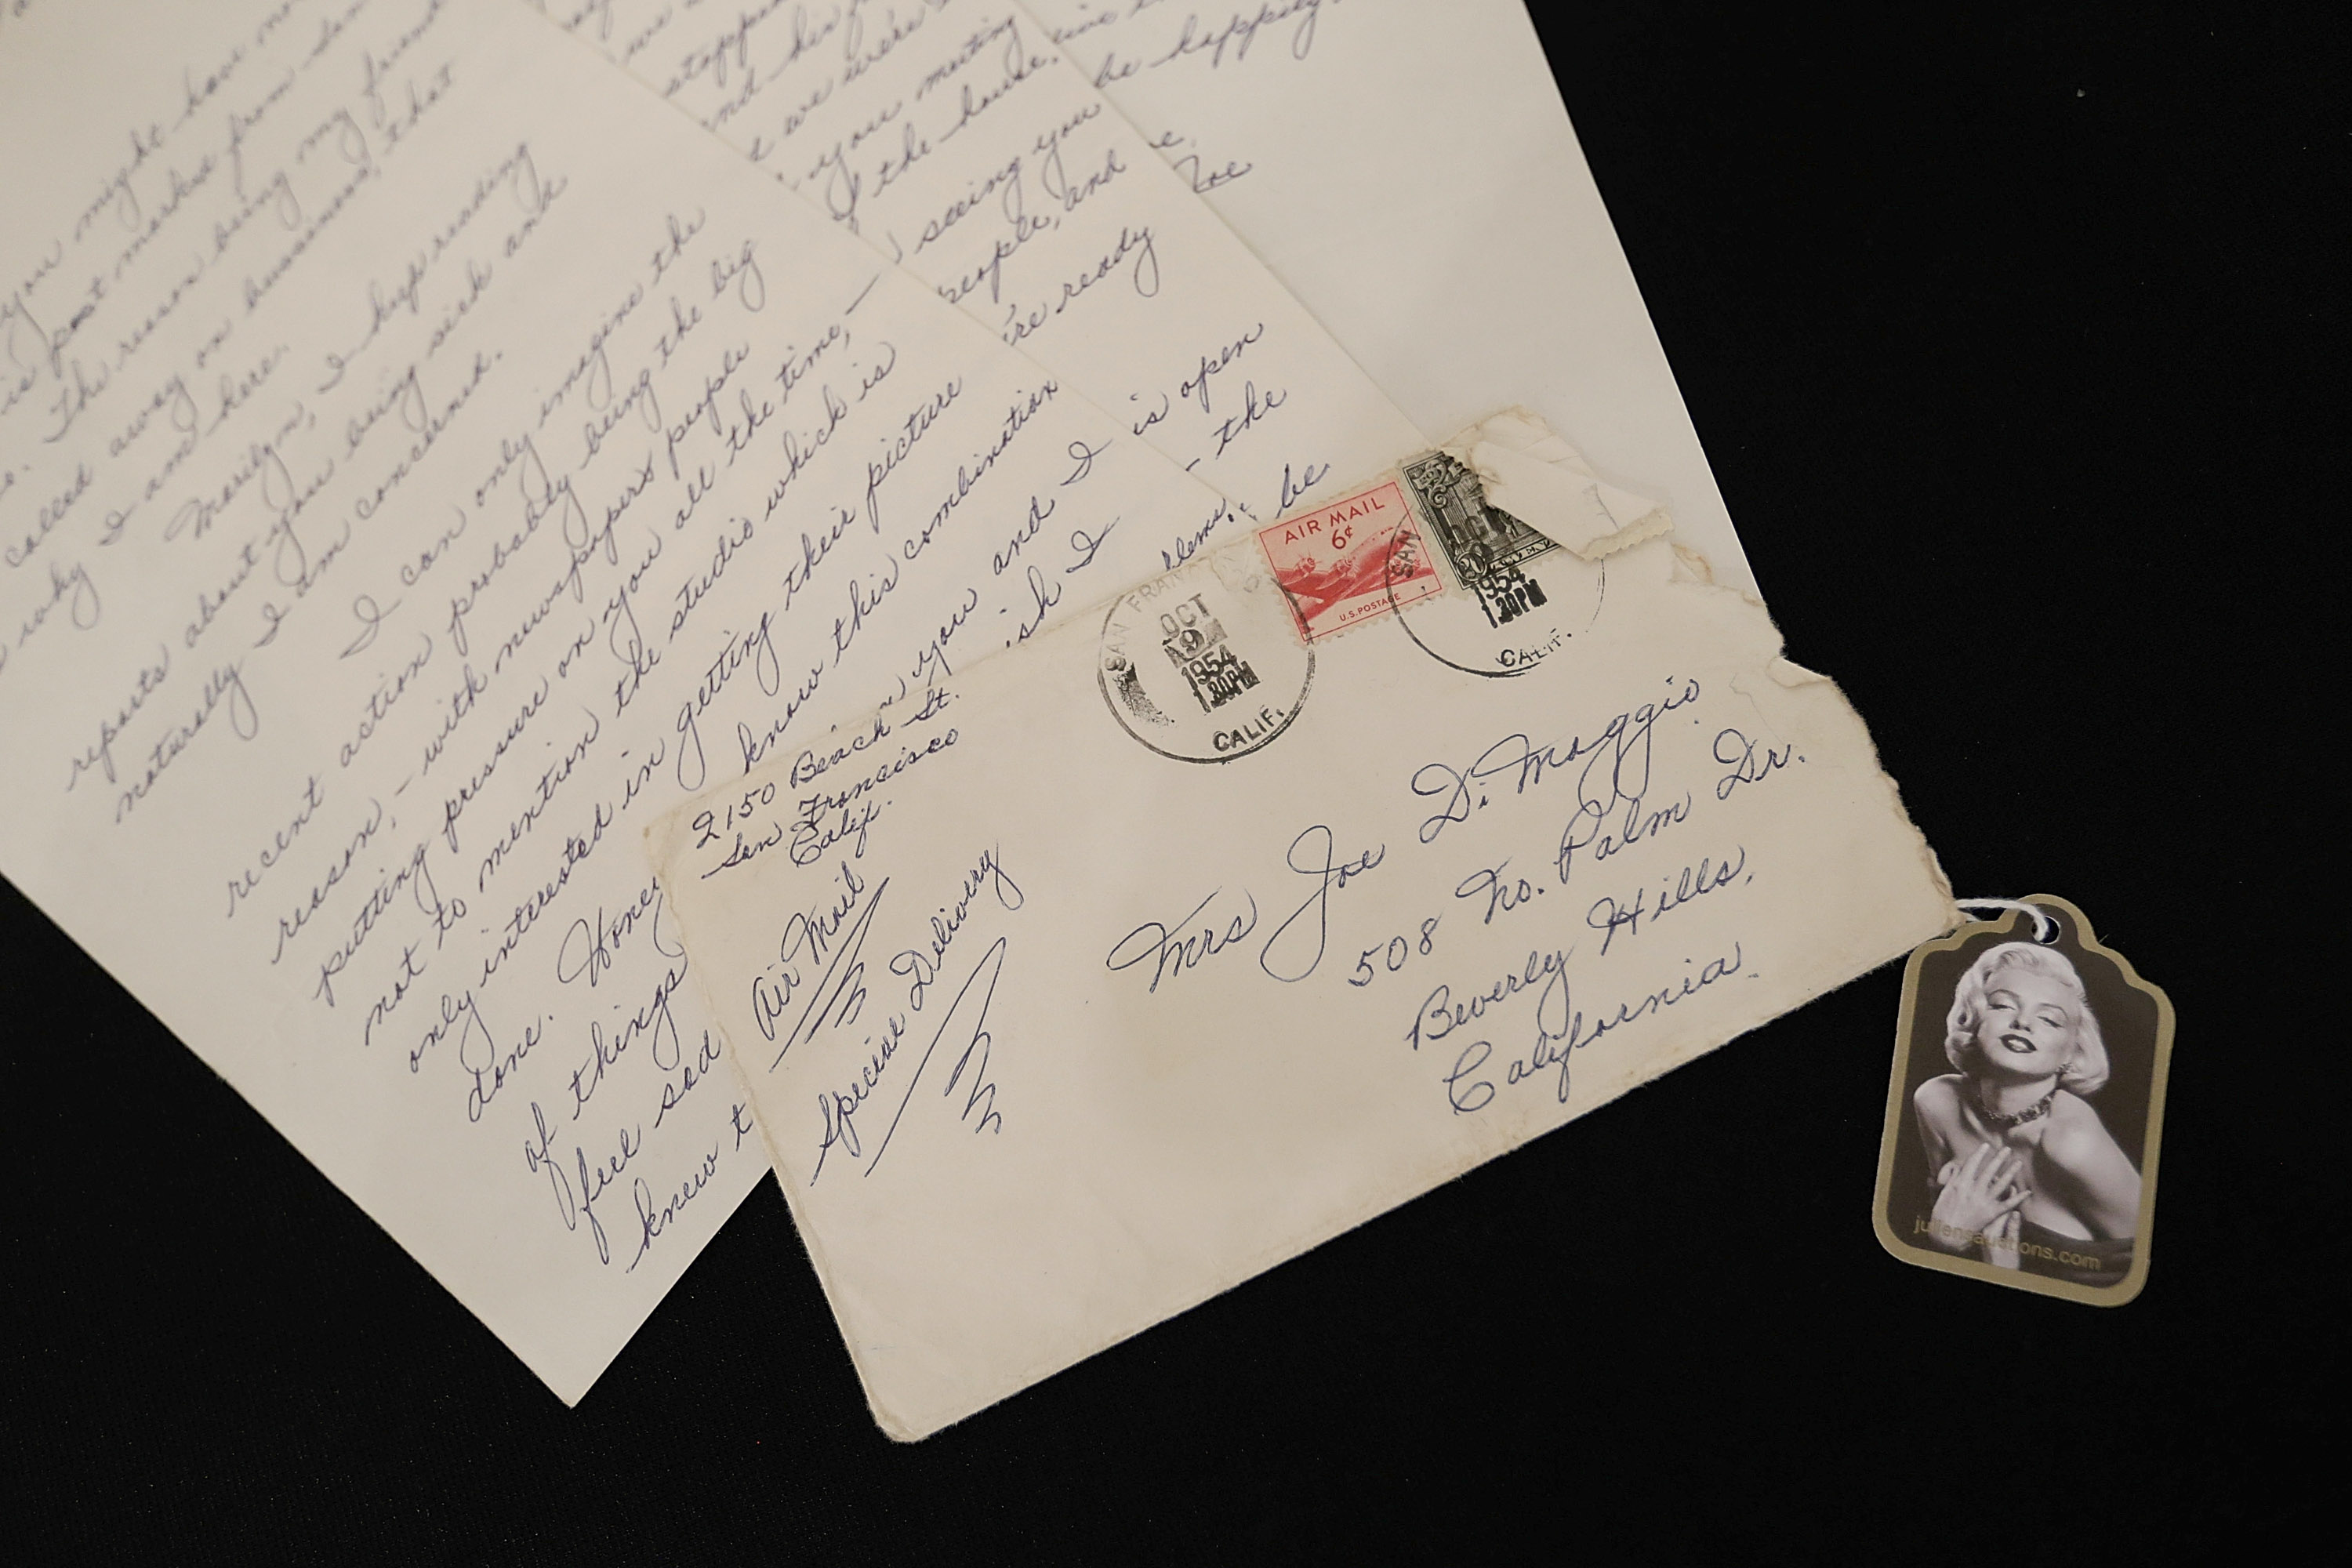 Love letters from Joe DiMaggio displayed at the  Marilyn Monroe: The Lost Archives  press preview at The Ross Art Group on Nov. 25, 2014 in New York City.